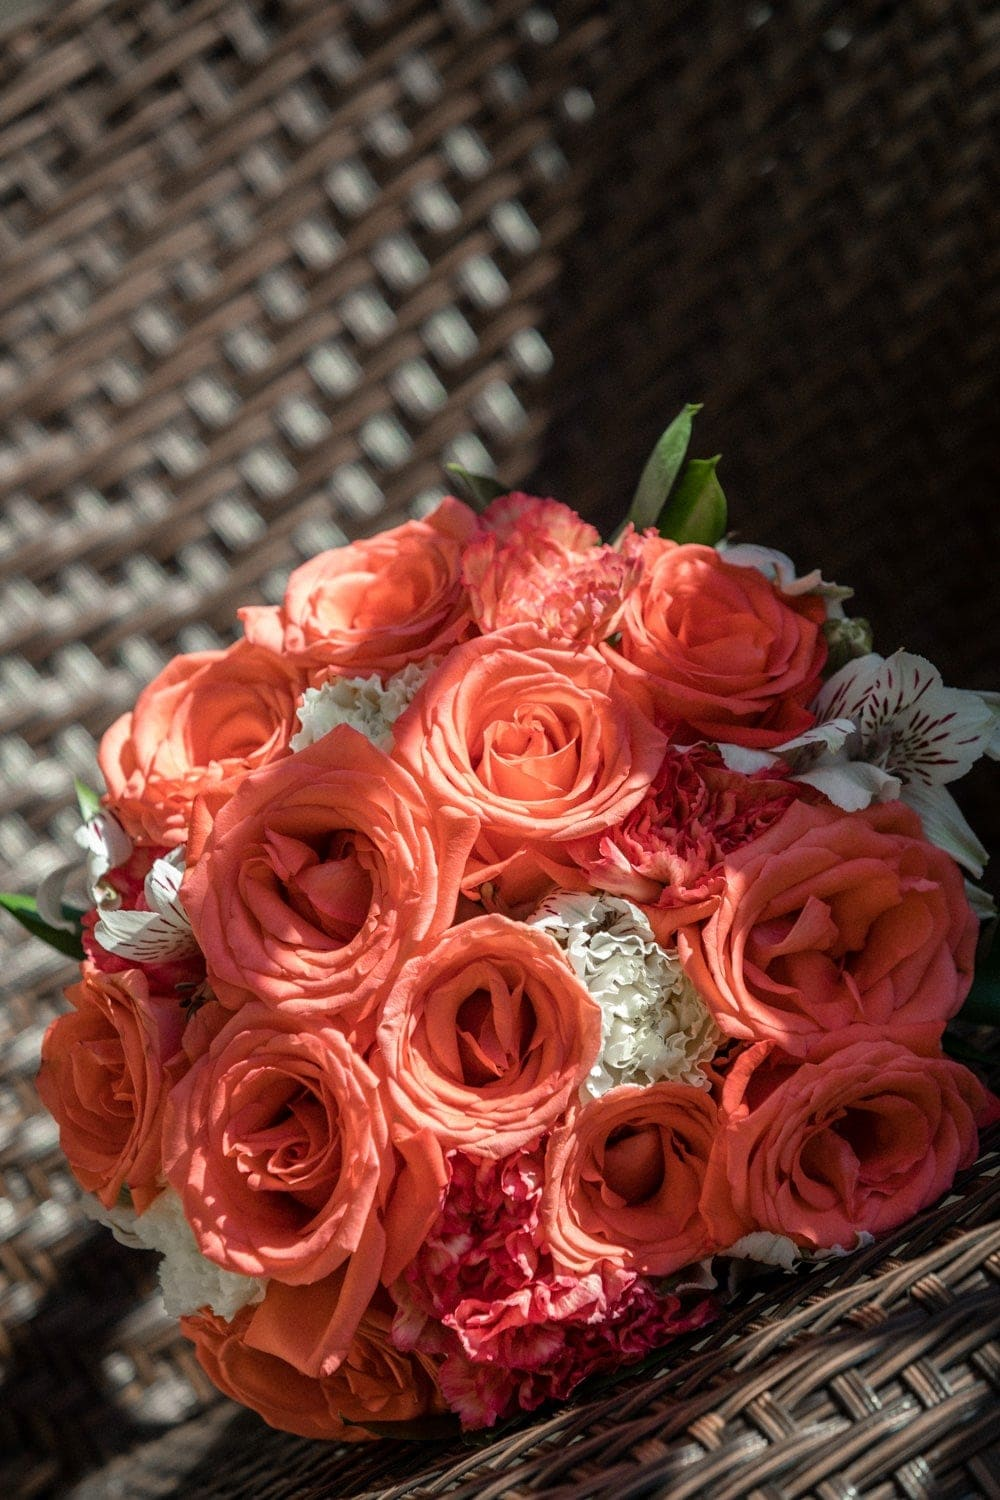 Beautiful bridal bouquet bathed in suns rays.